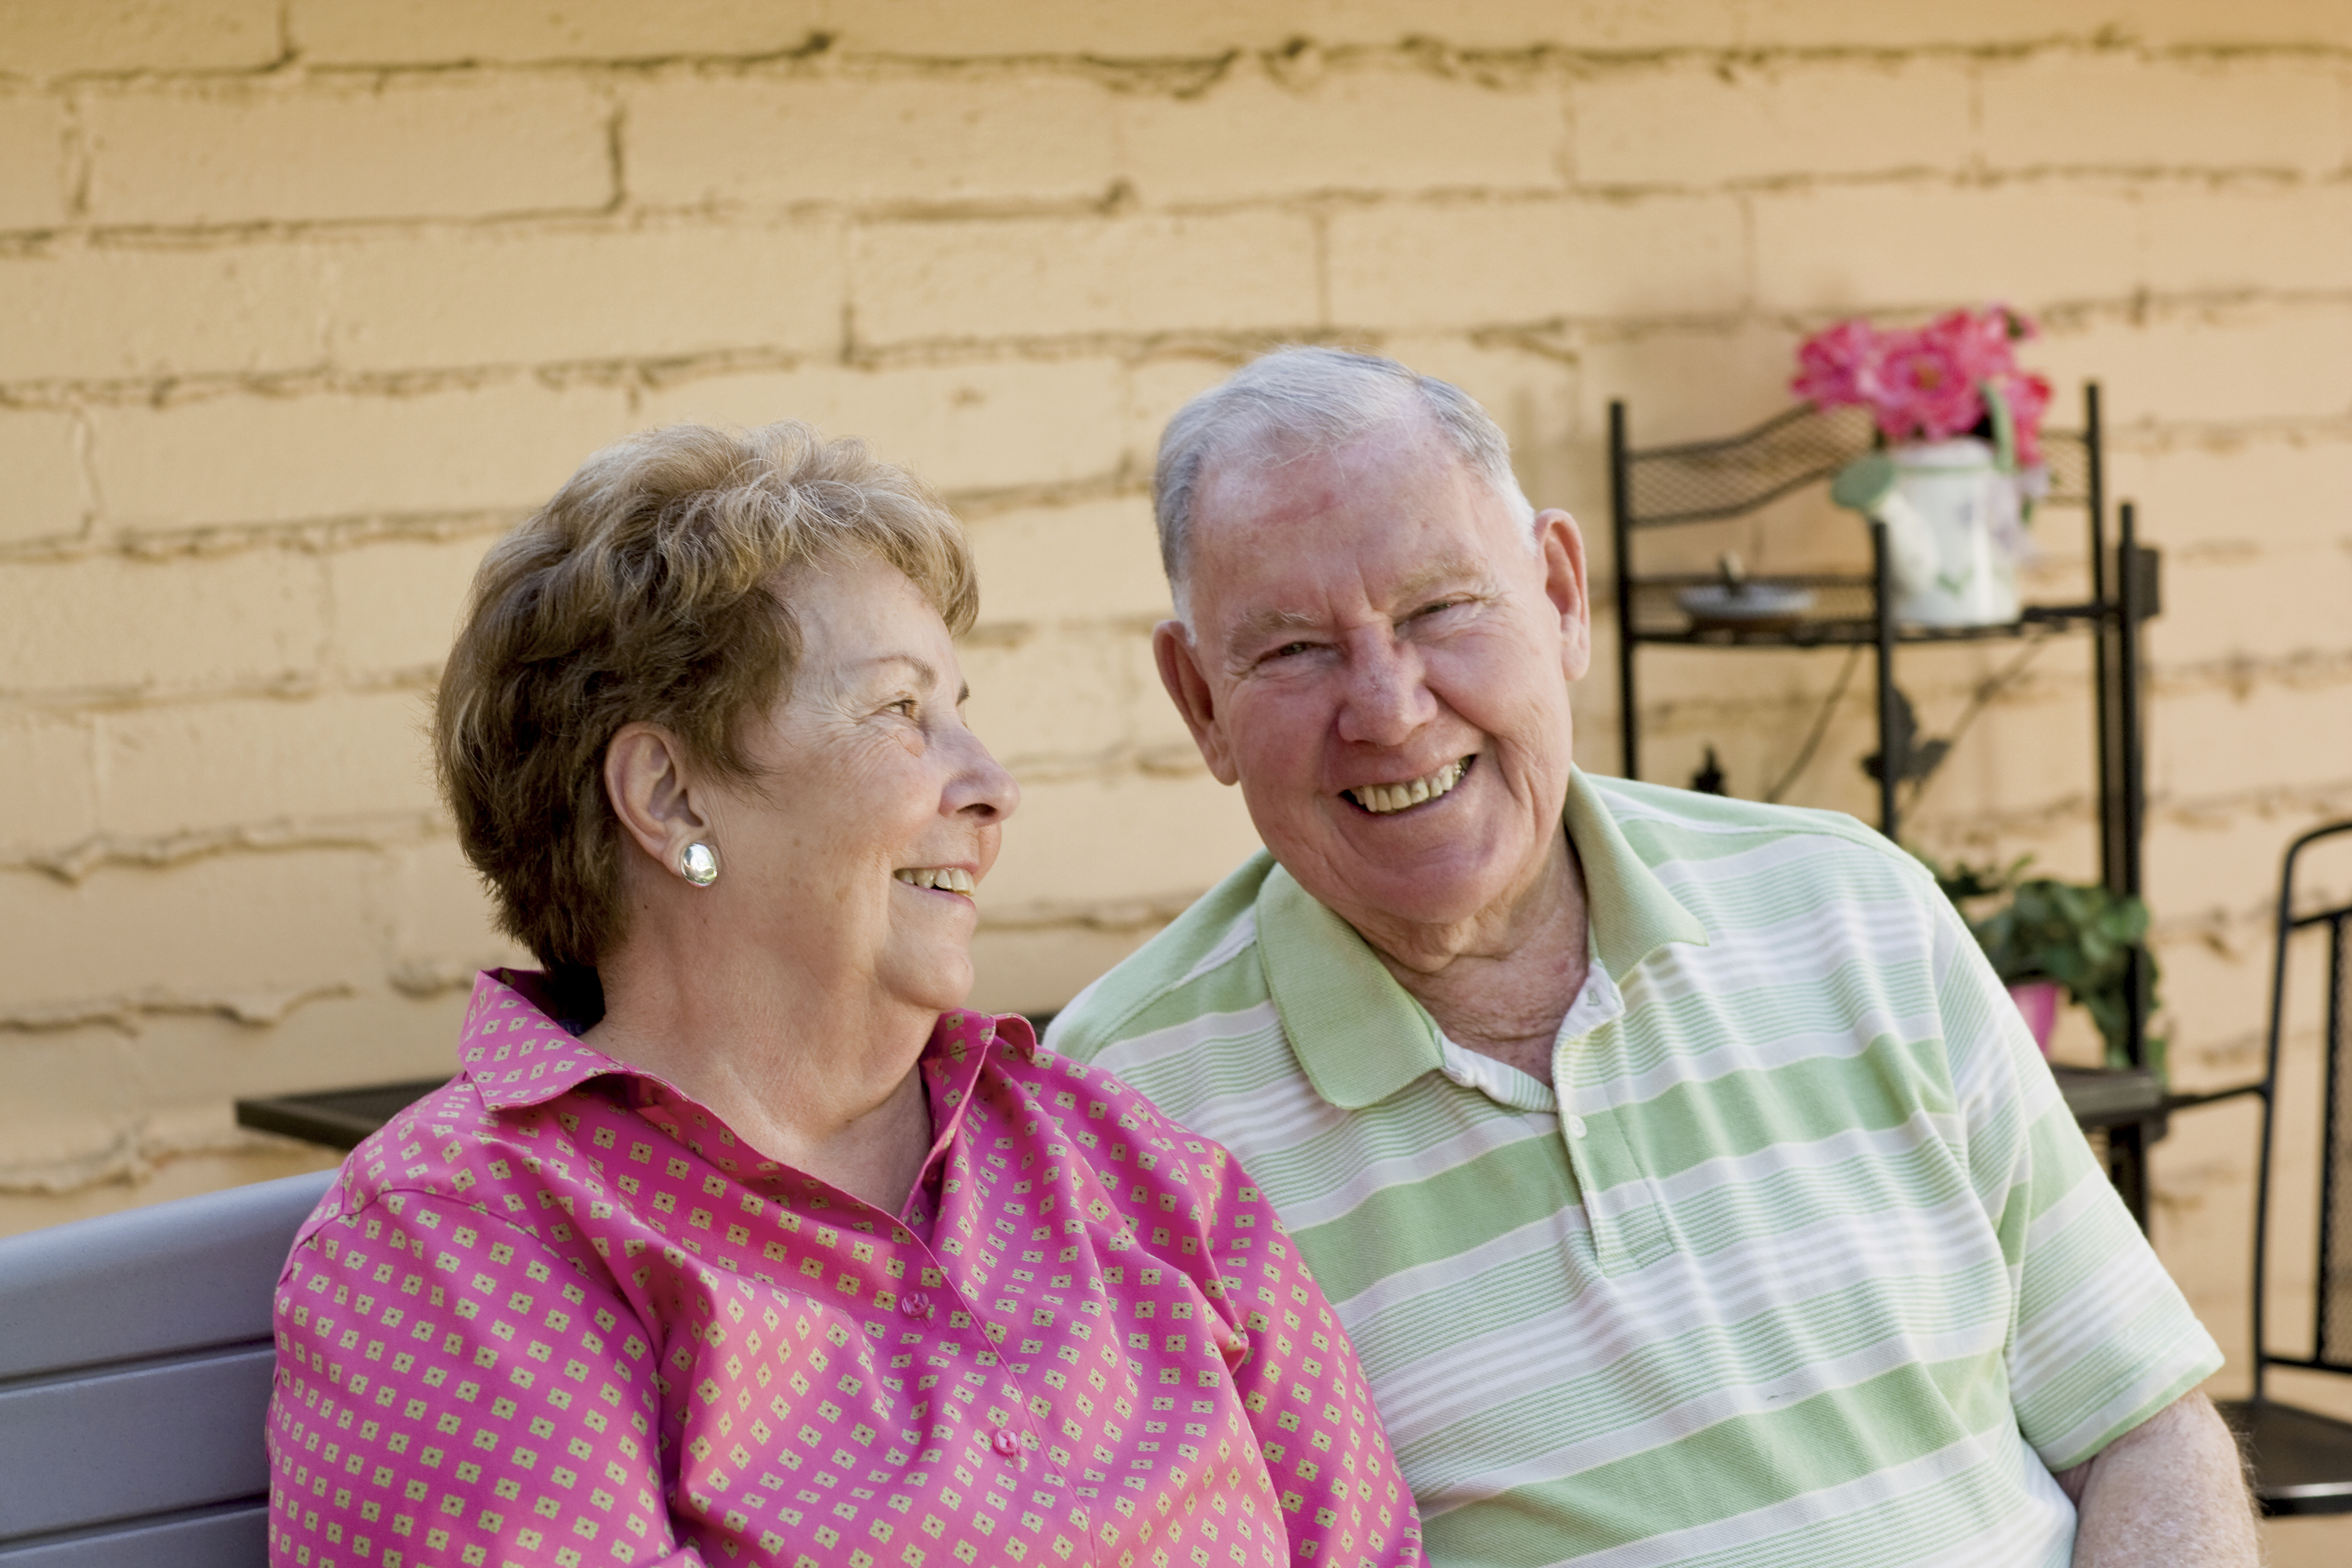 An image of an elderly married couple.